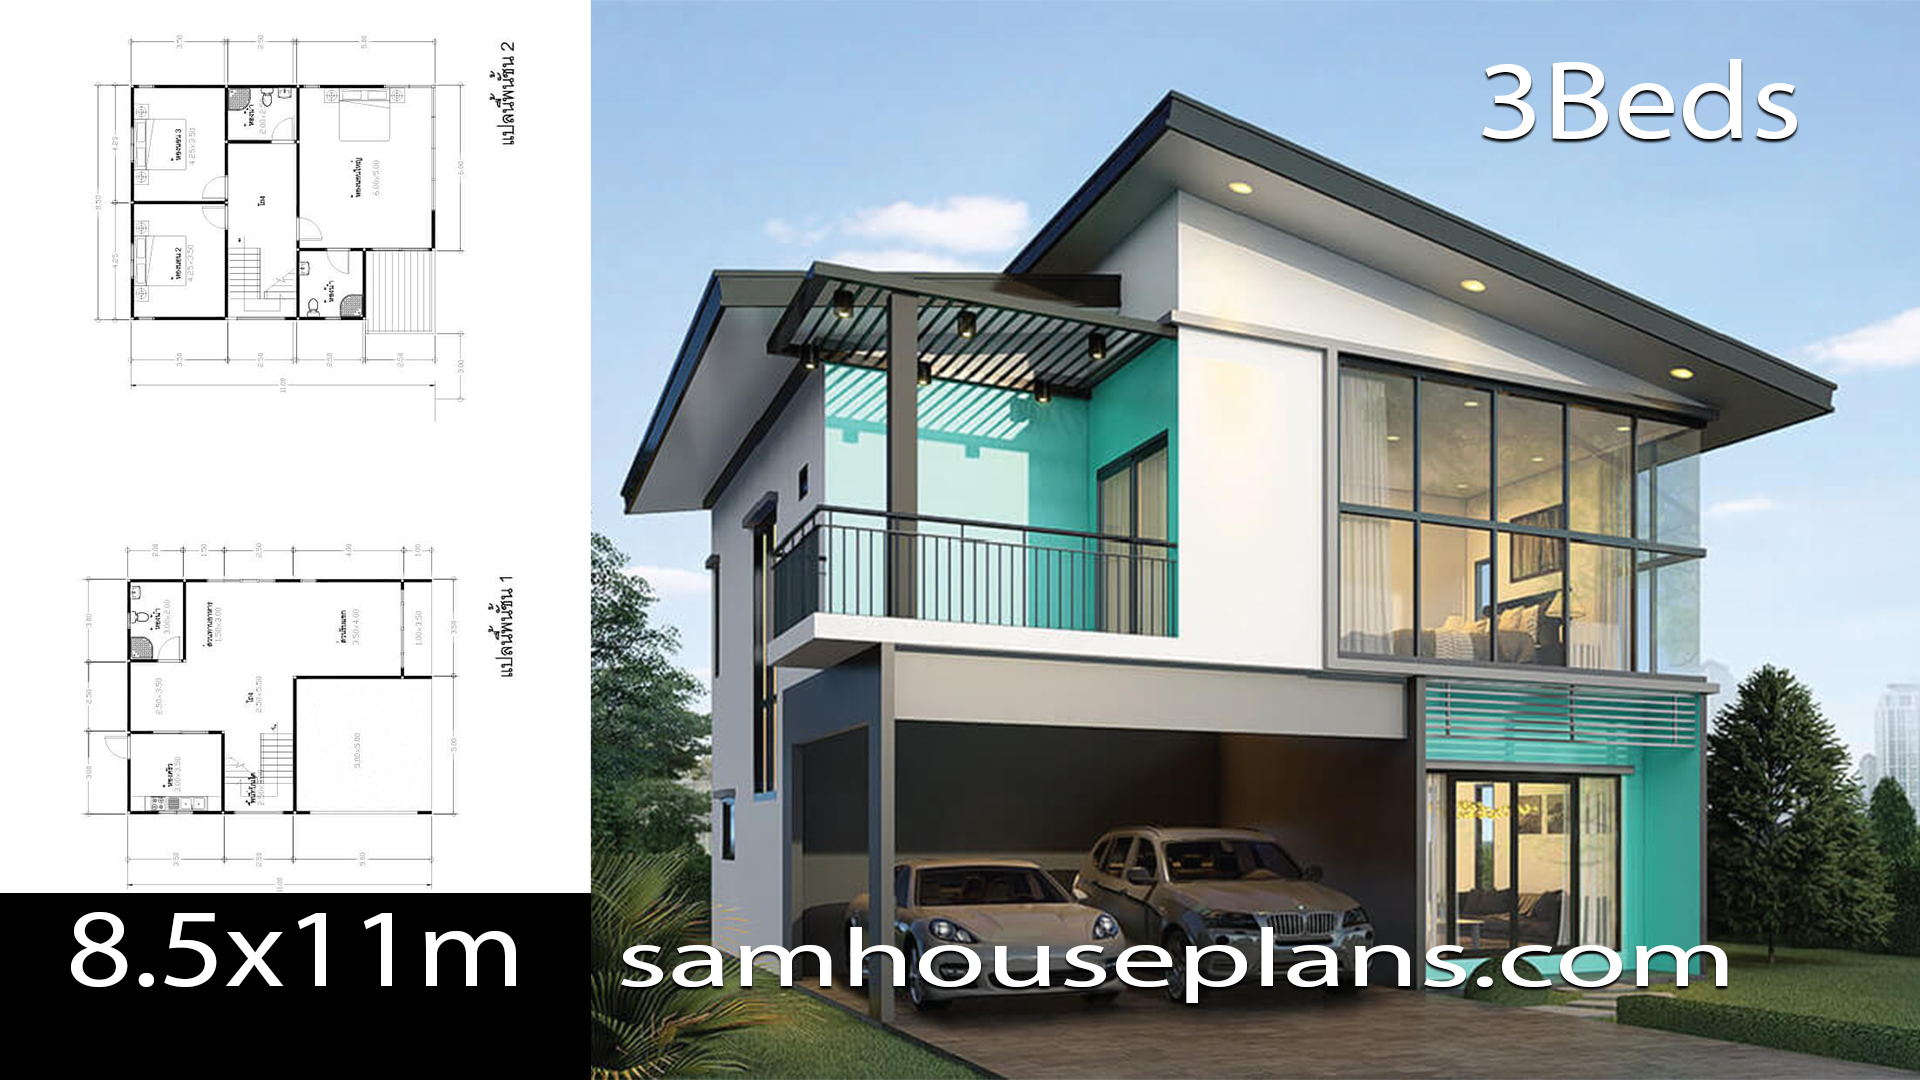 House Plans Idea 8.5x11 with 3 Bedrooms - Sam House Plans